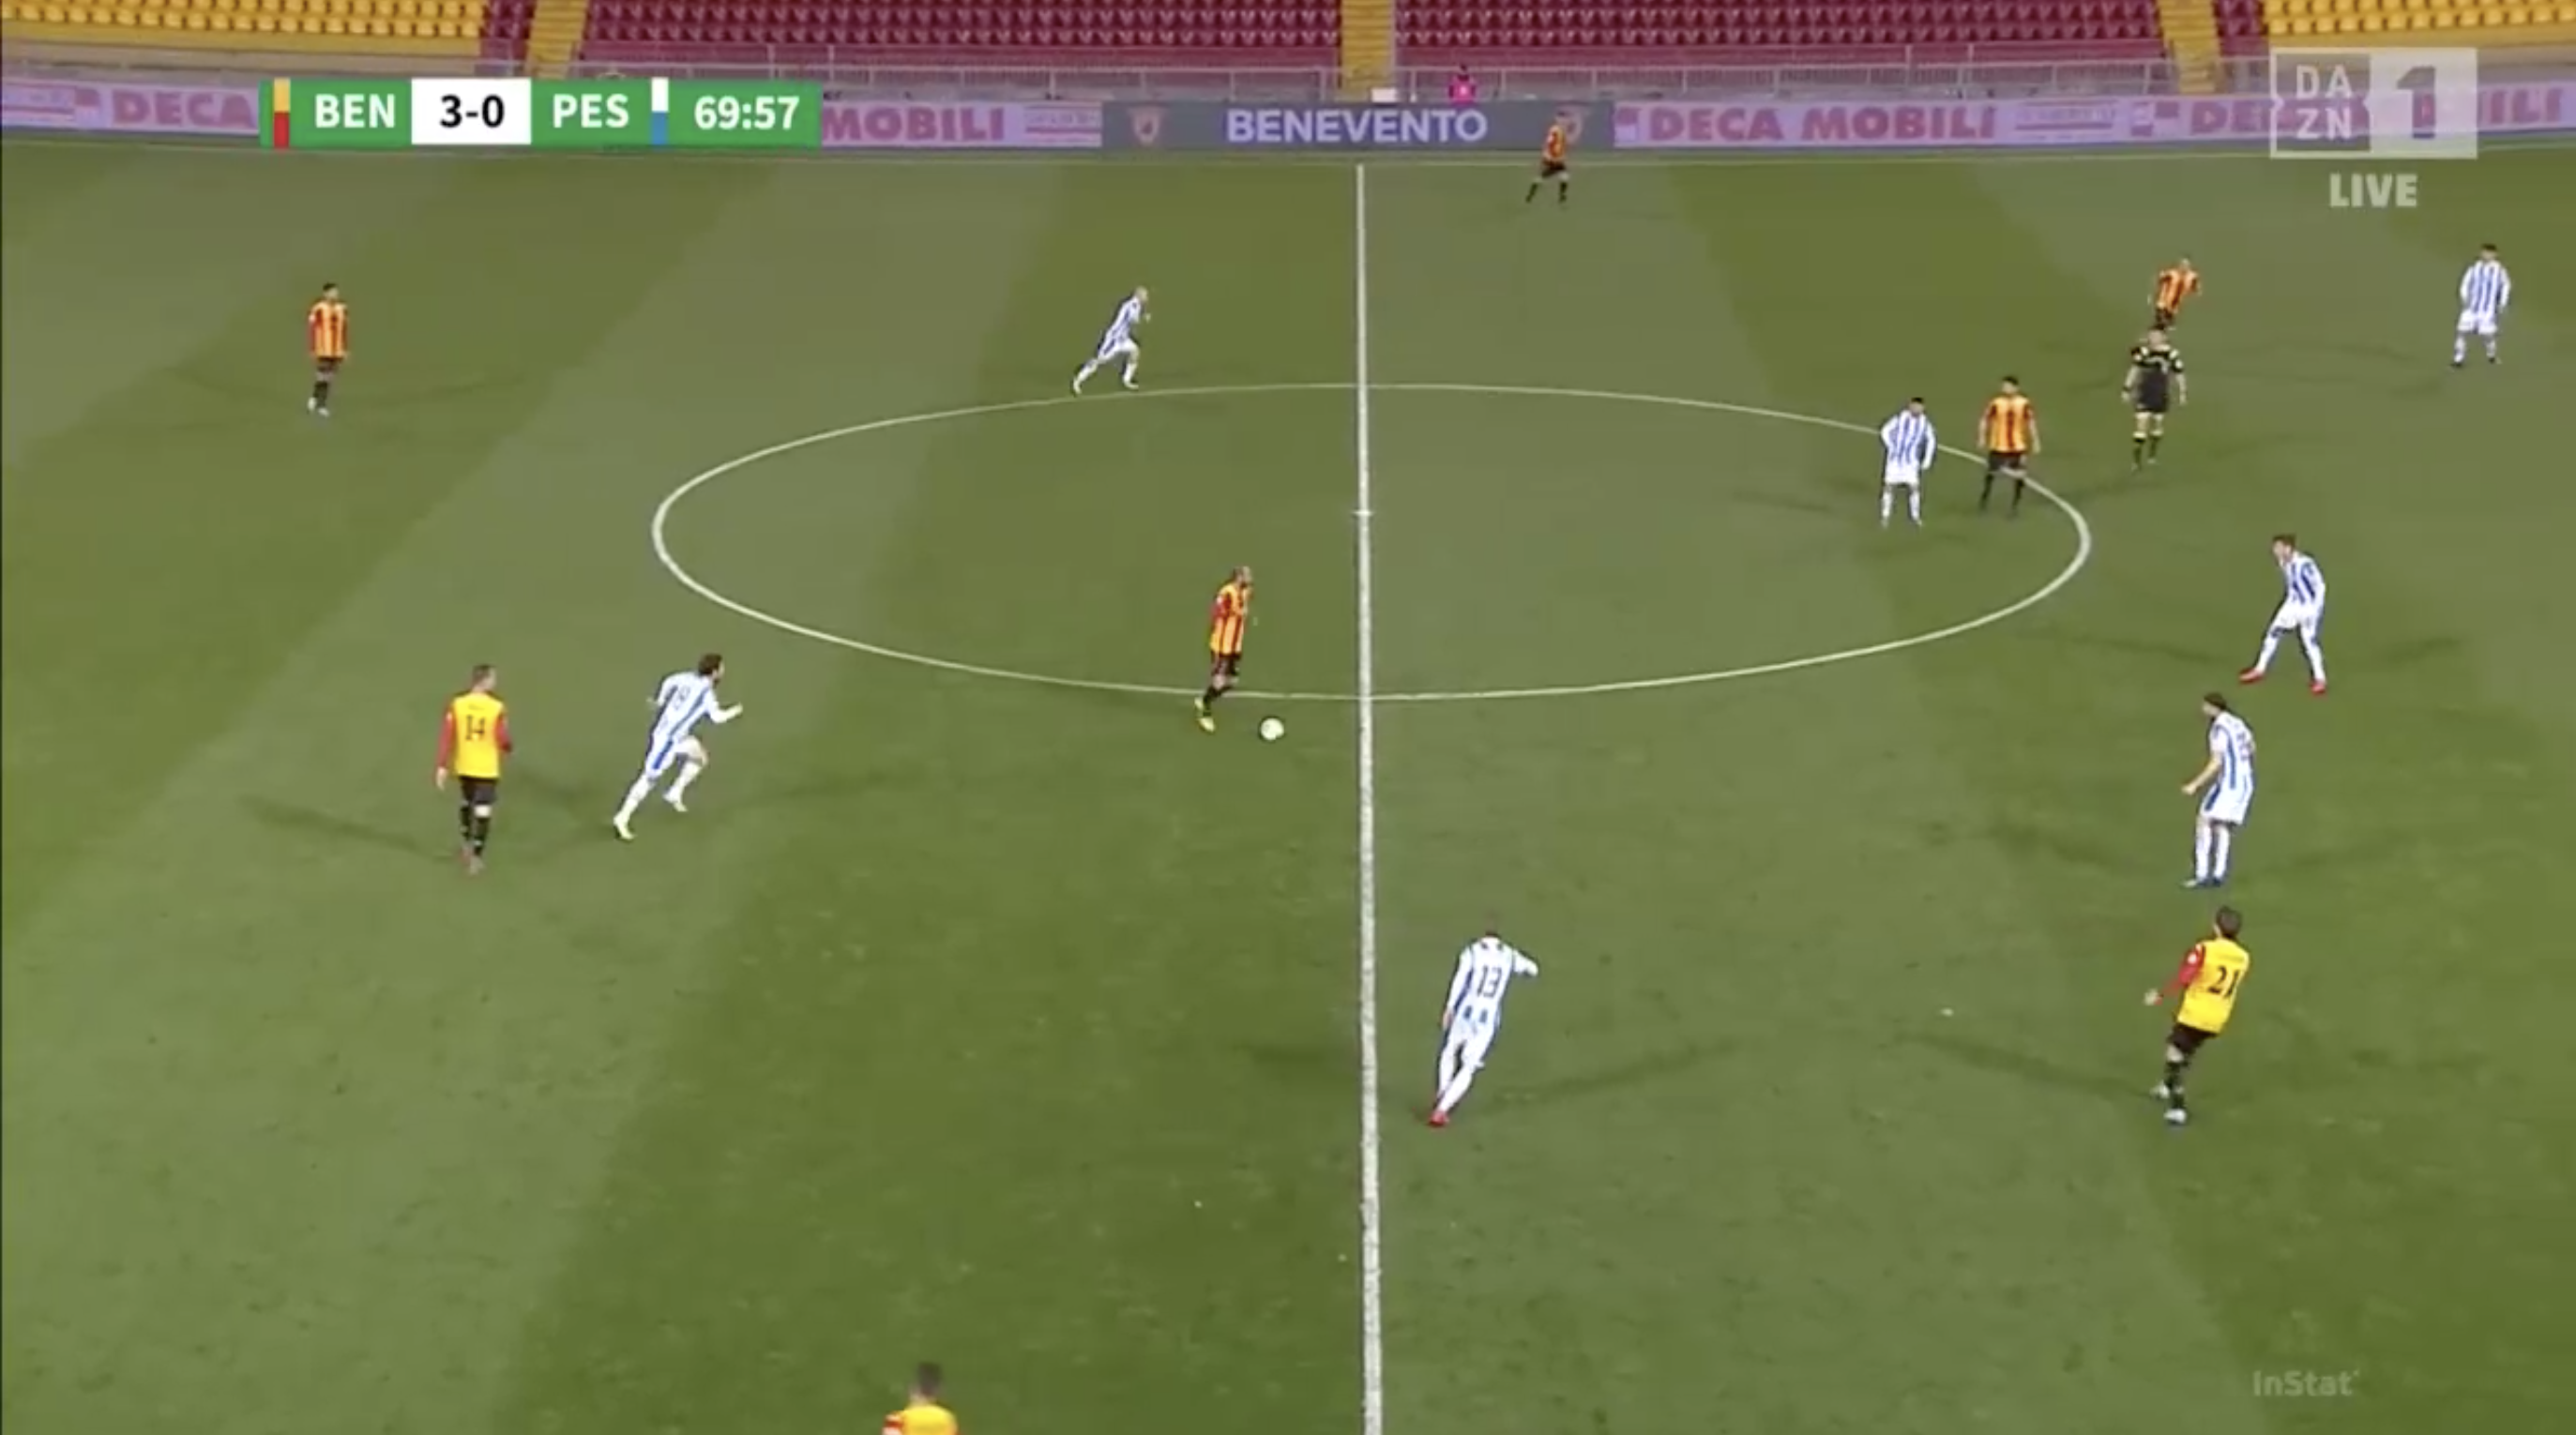 Filippo Inzaghi at Benevento, A tactical analysis 2019/2020 – Part One, with the ball + Tactics